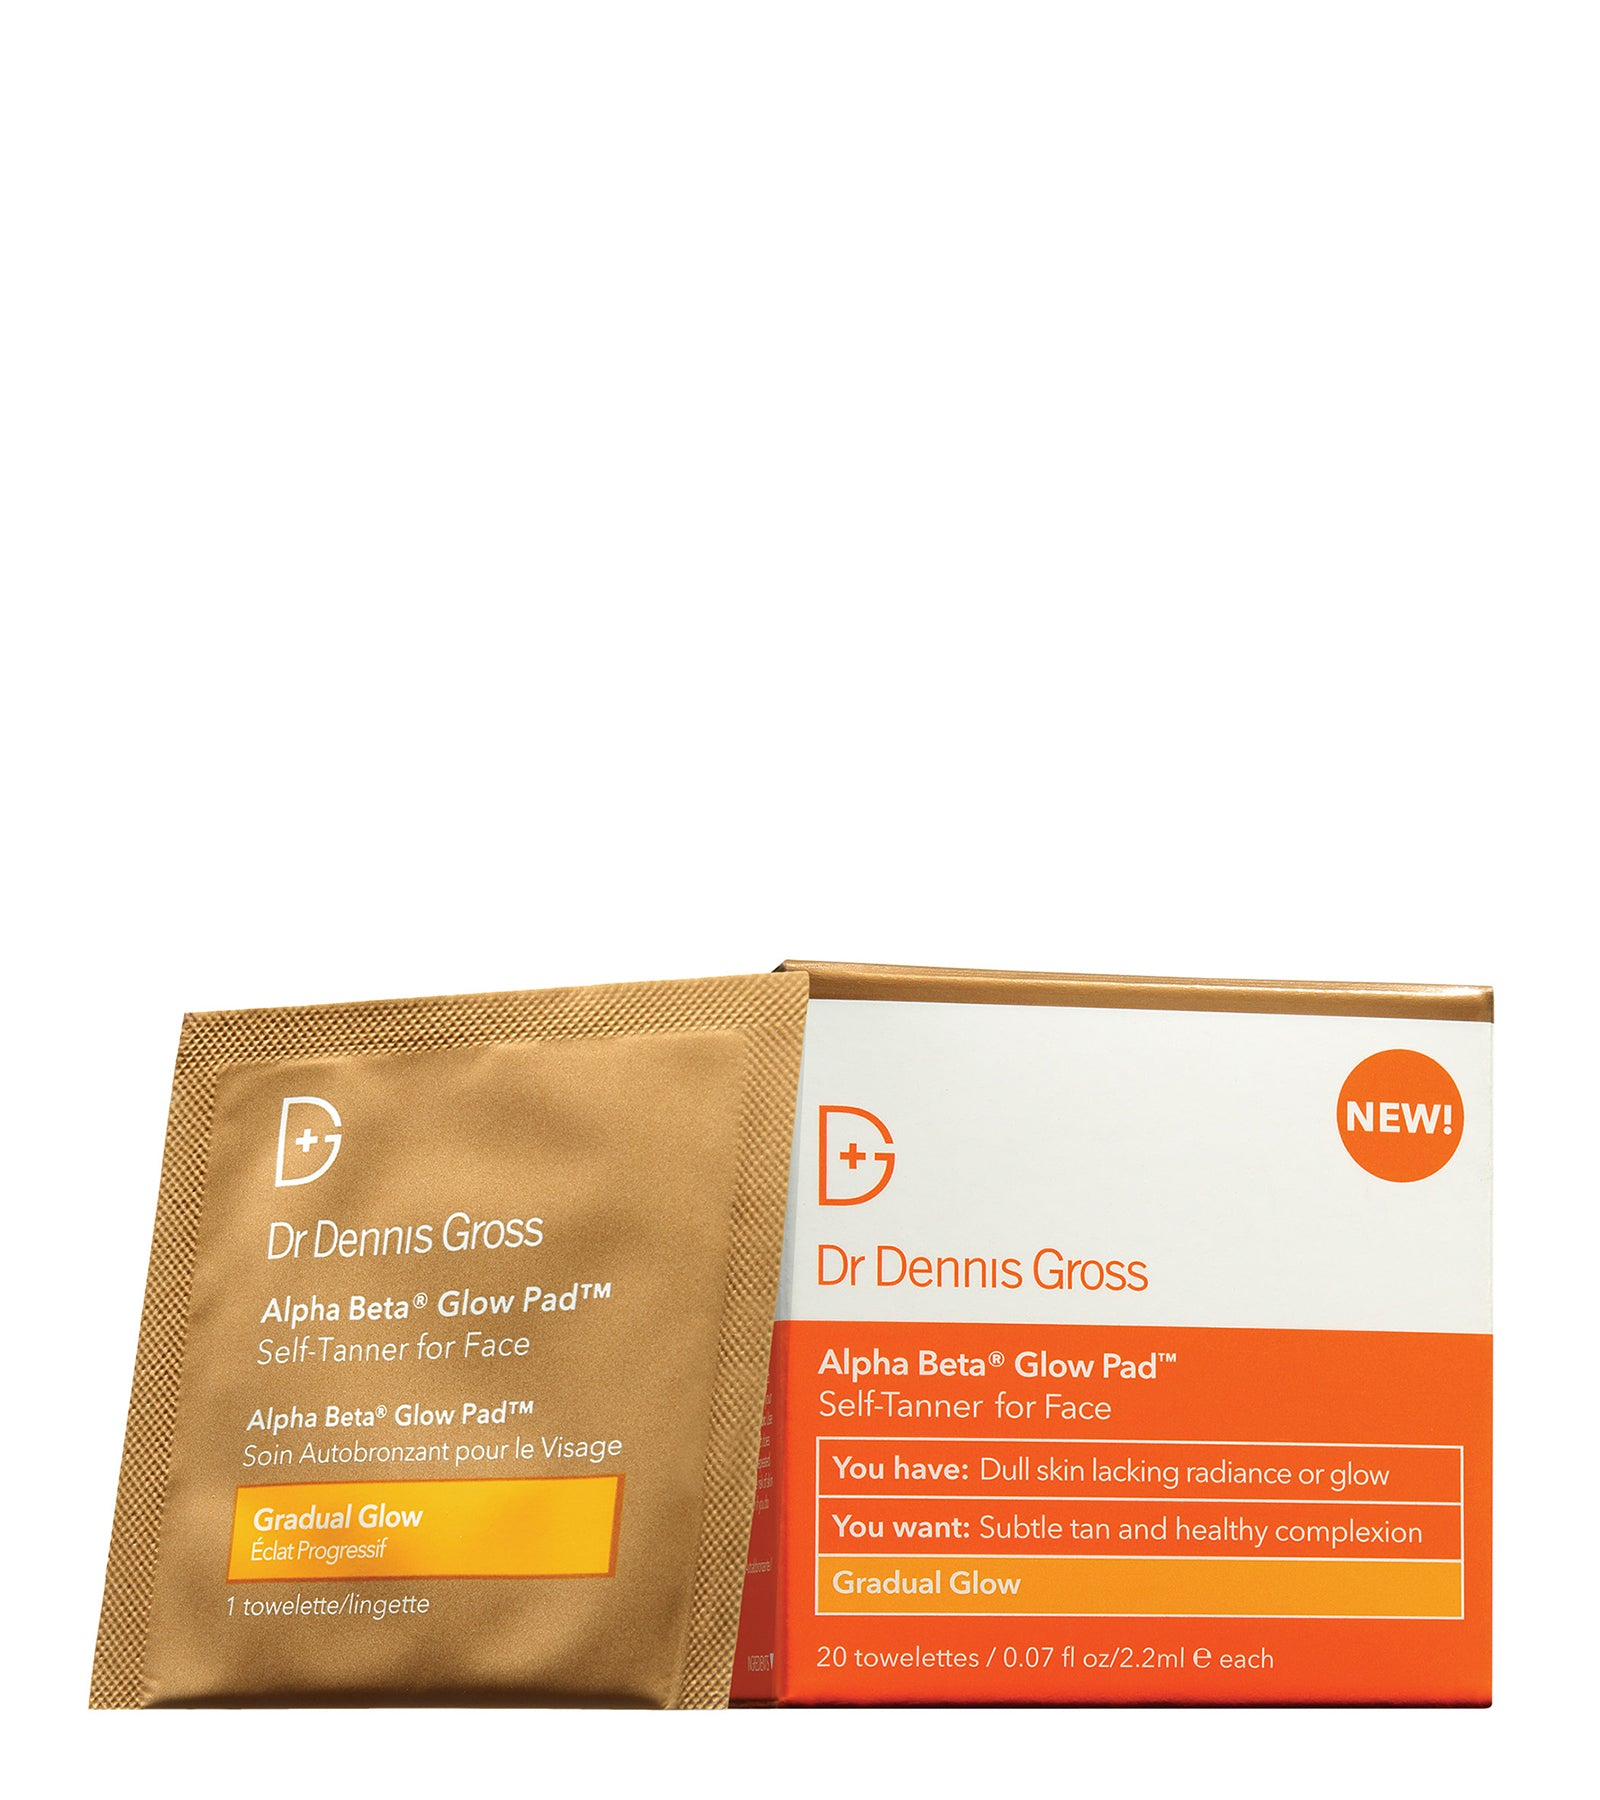 Alpha Beta® Glow Pad™ for Face Gradual Glow bus brun utan sol exfoliating peeling dr Dennis gross